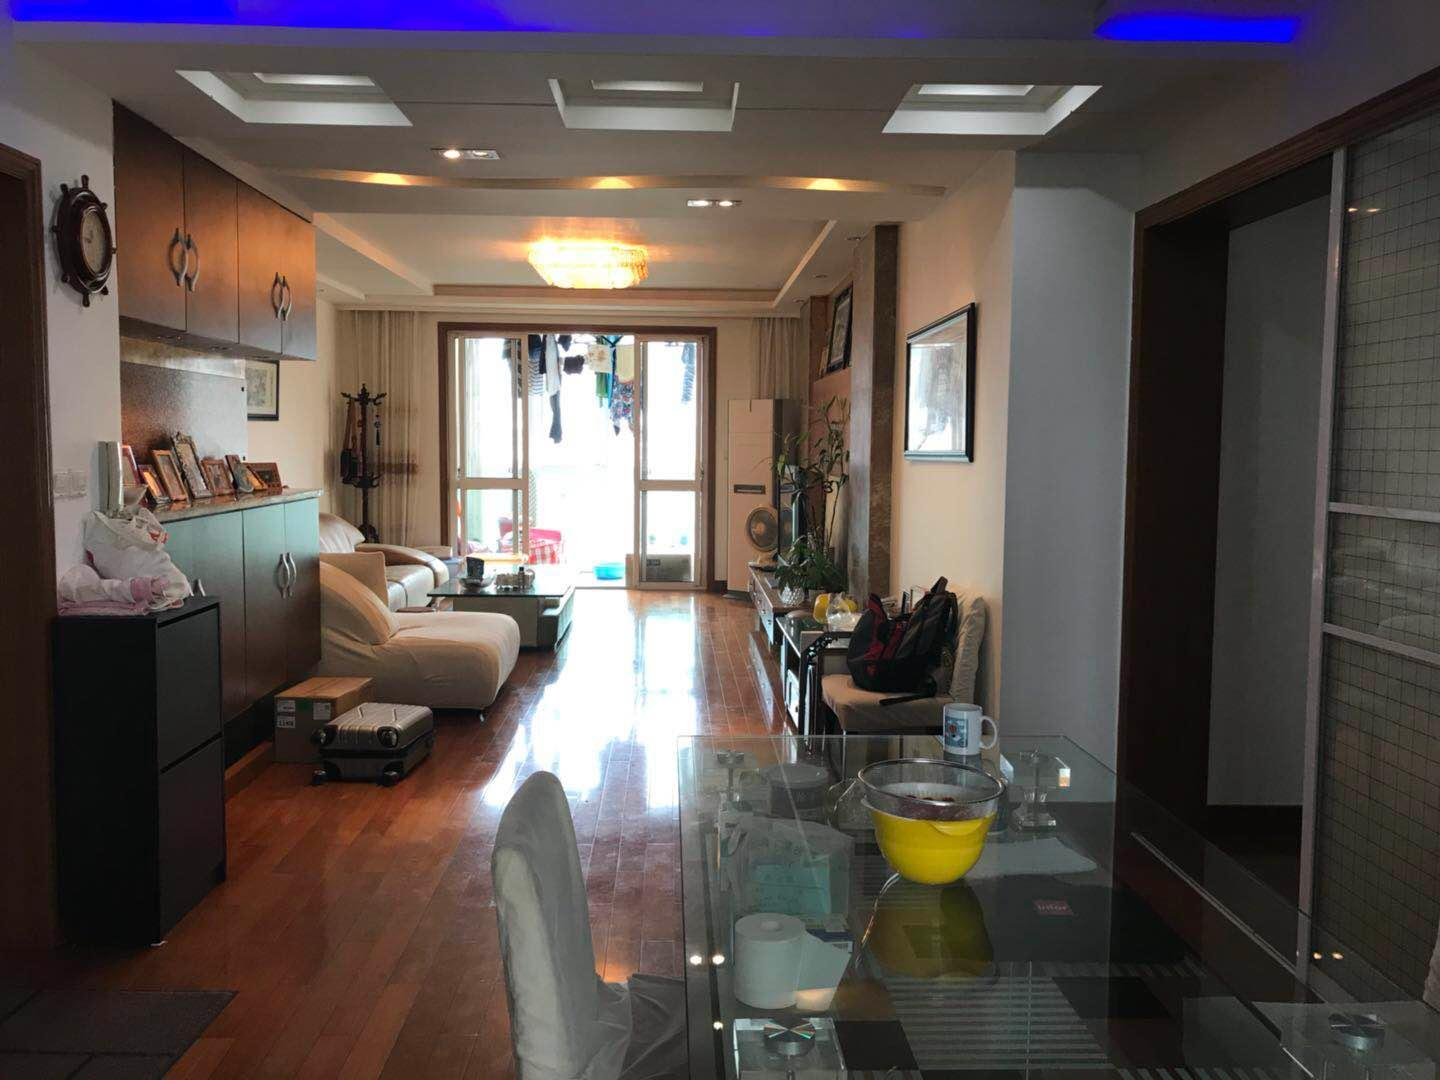 Luxurious upscale apartment for homestay – Hotel Reviews, Pictures and Room Prices